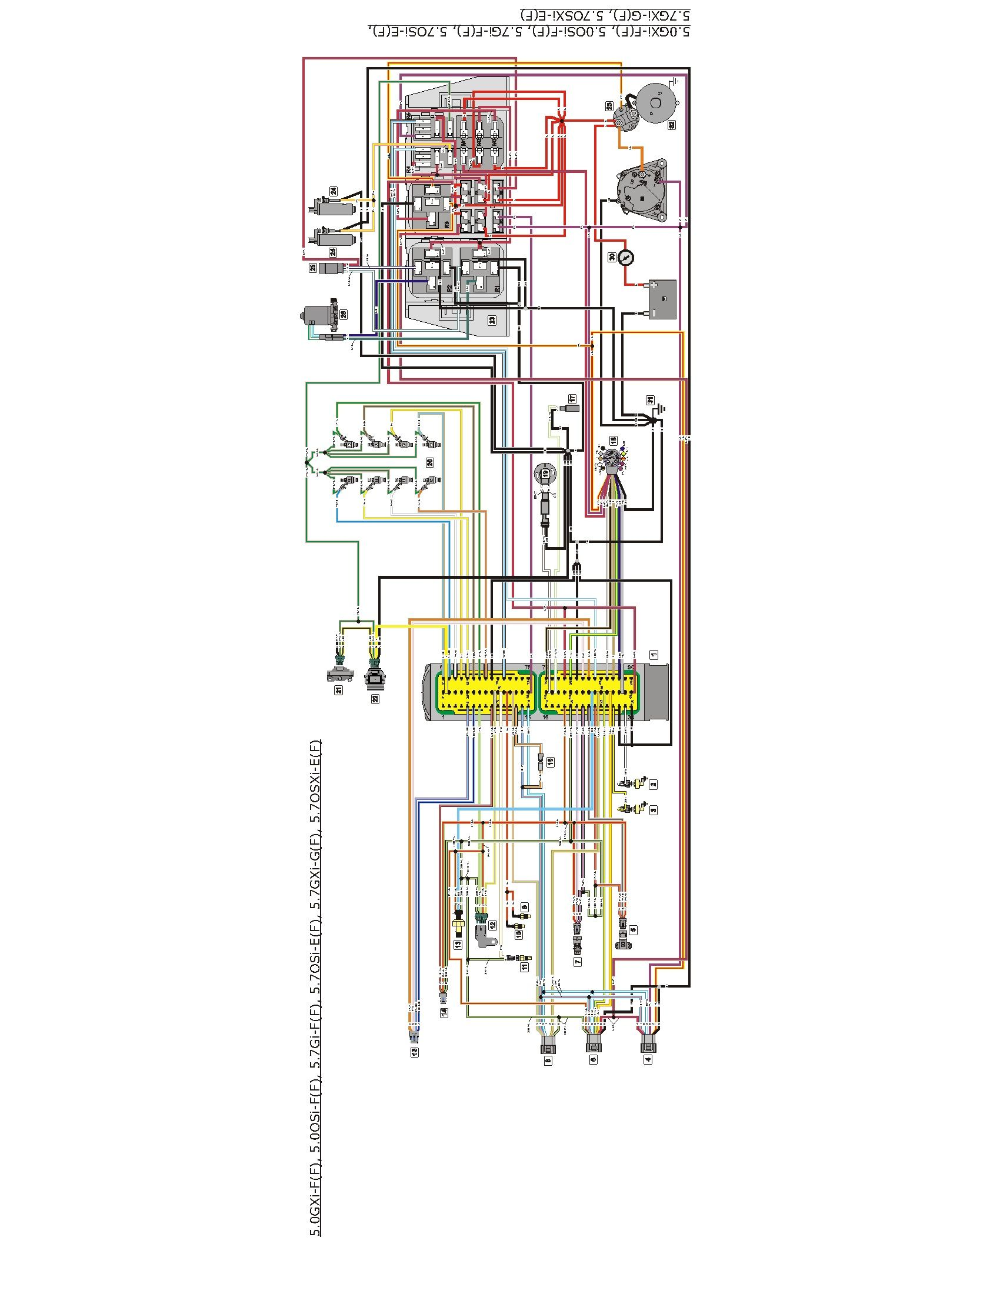 Tremendous Volvo S60 Wiring Diagram Basic Electronics Wiring Diagram Wiring  101 Tronsgresihahutechinfo in 2021 | Volvo, Trailer light wiring, Diagram | Volvo S60 Engine Electric Diagram |  | Pinterest